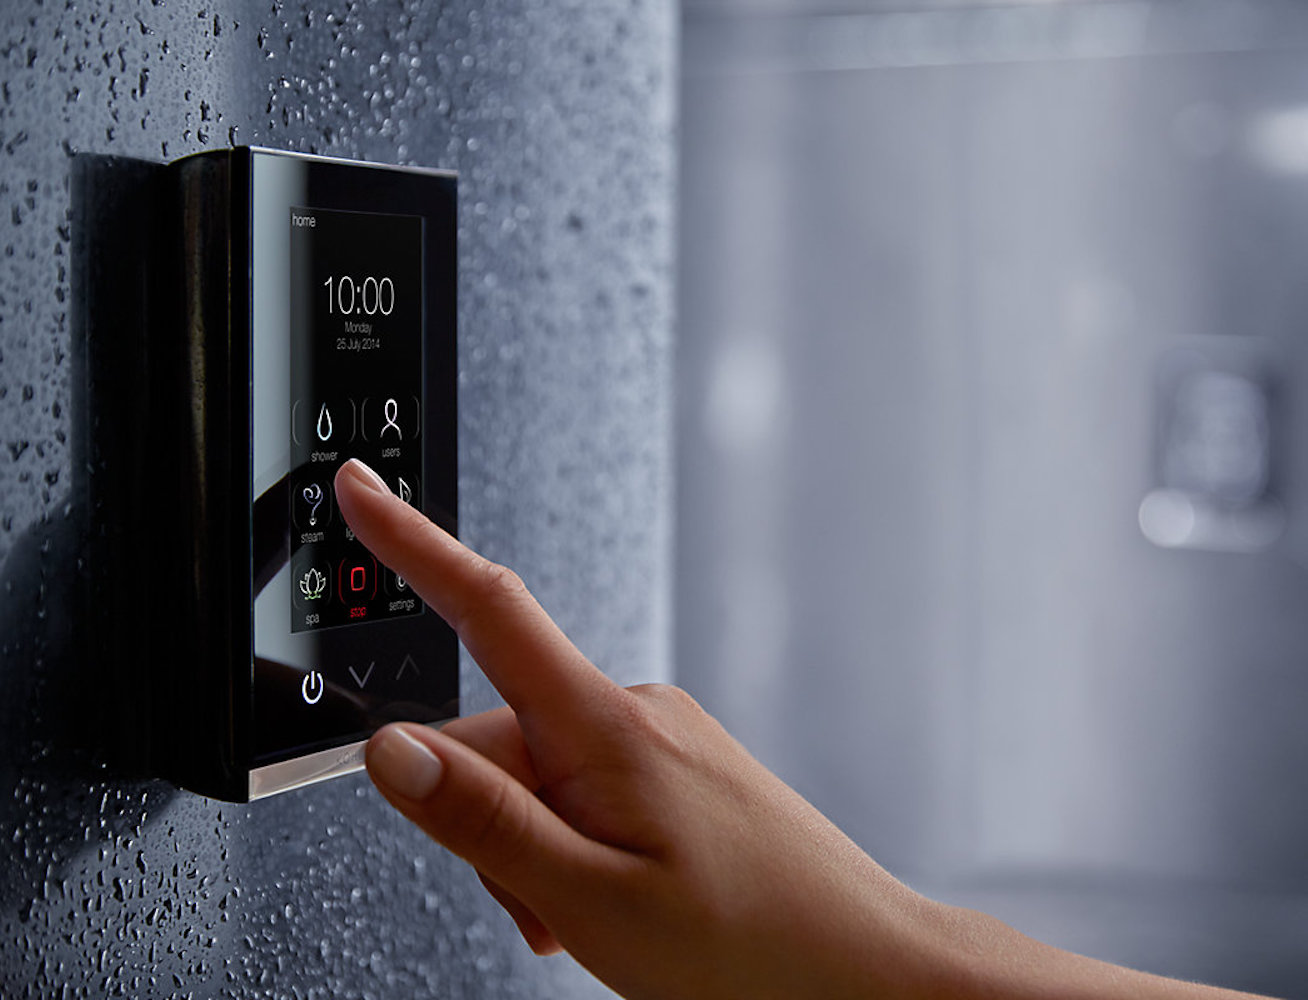 Kohler Dtv Digital Shower Interface Review 187 The Gadget Flow